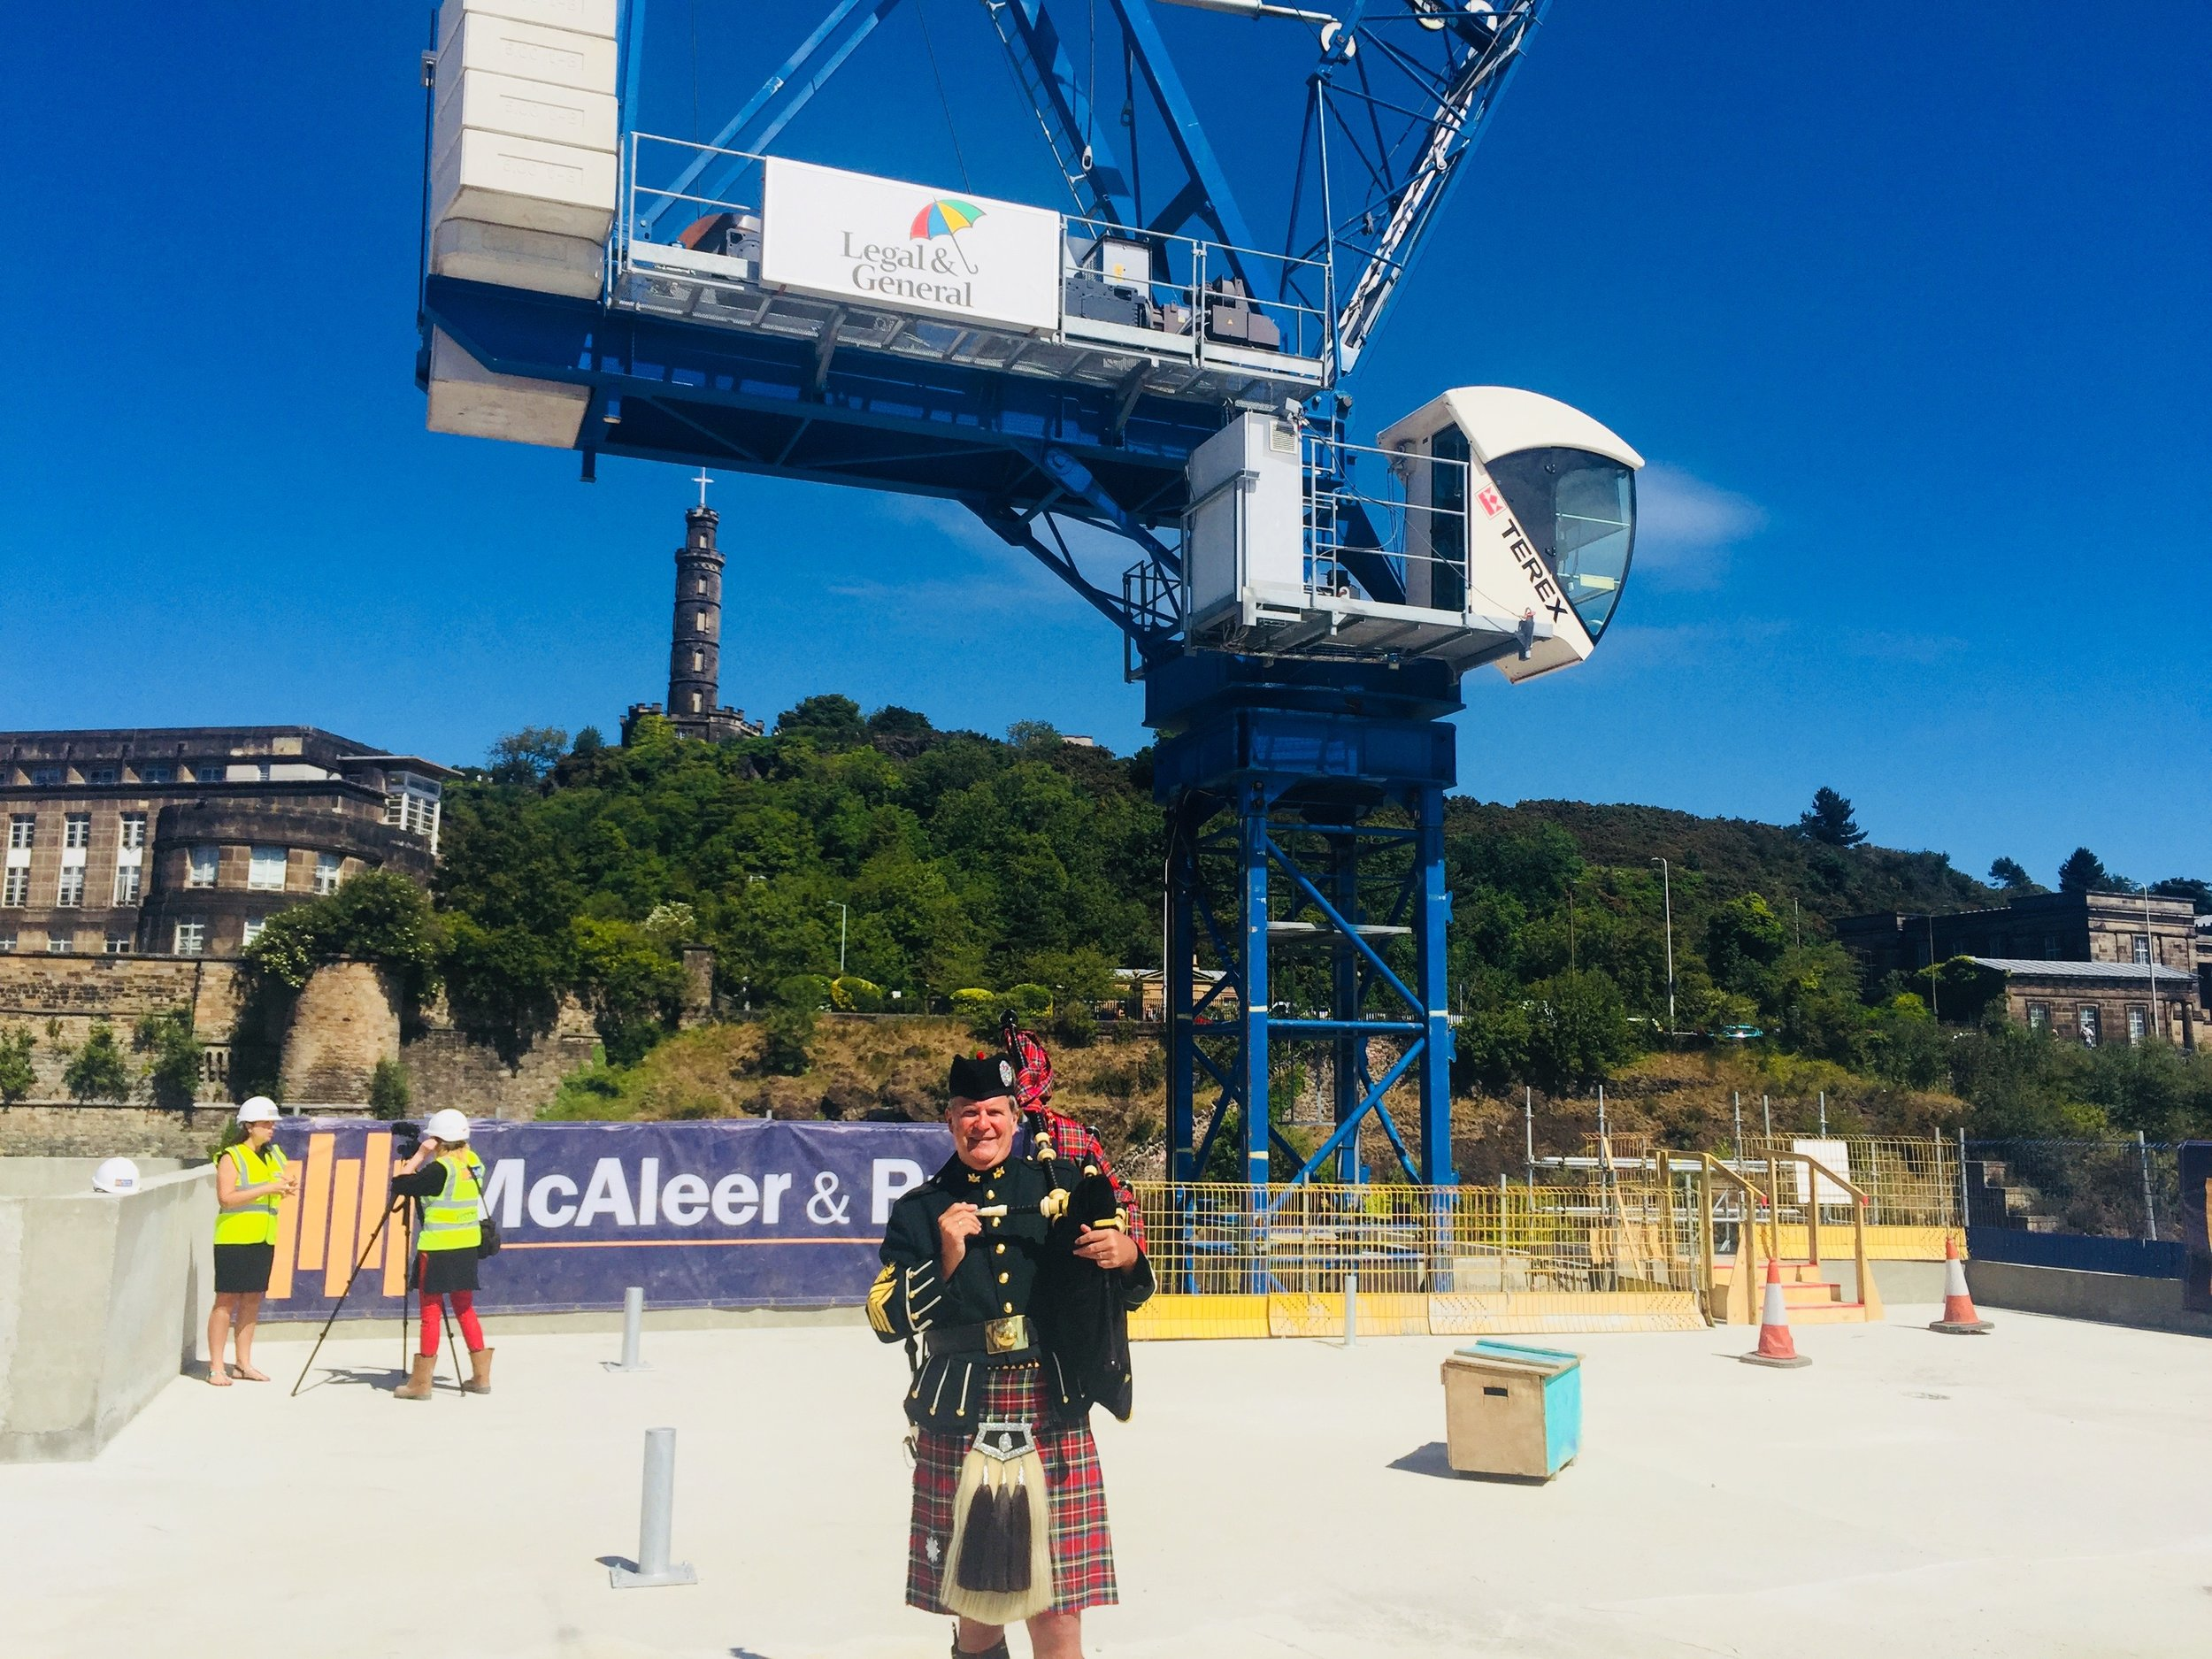 Topping Out. Waverley Edinburgh